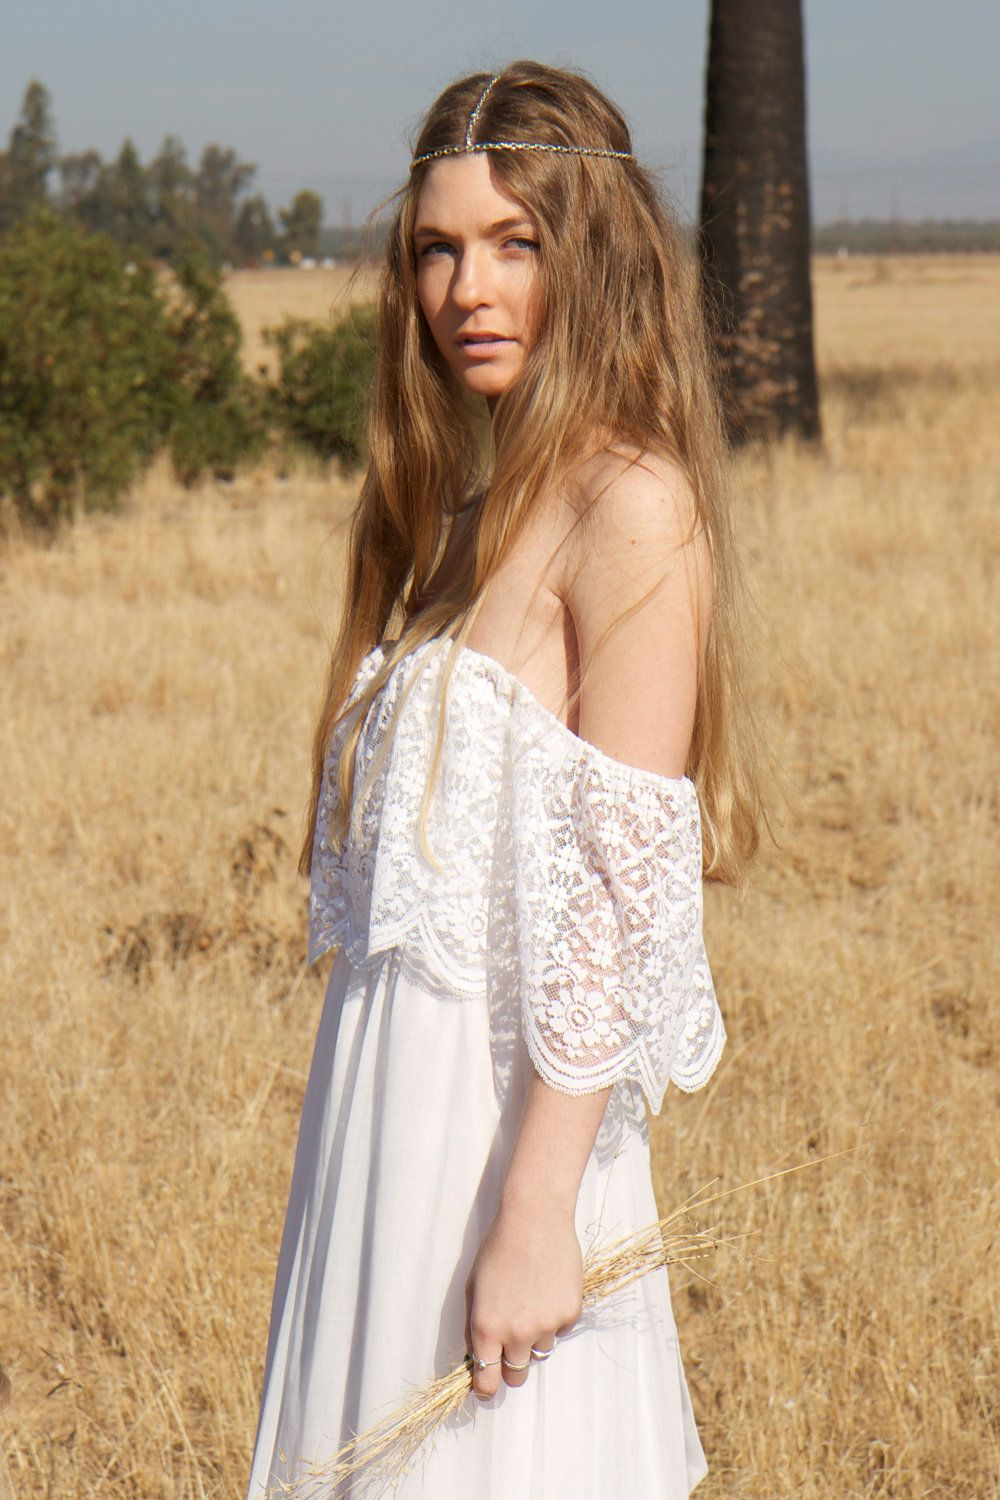 Bohemianwedding dresses lace ivory white off the shoulder s hippie